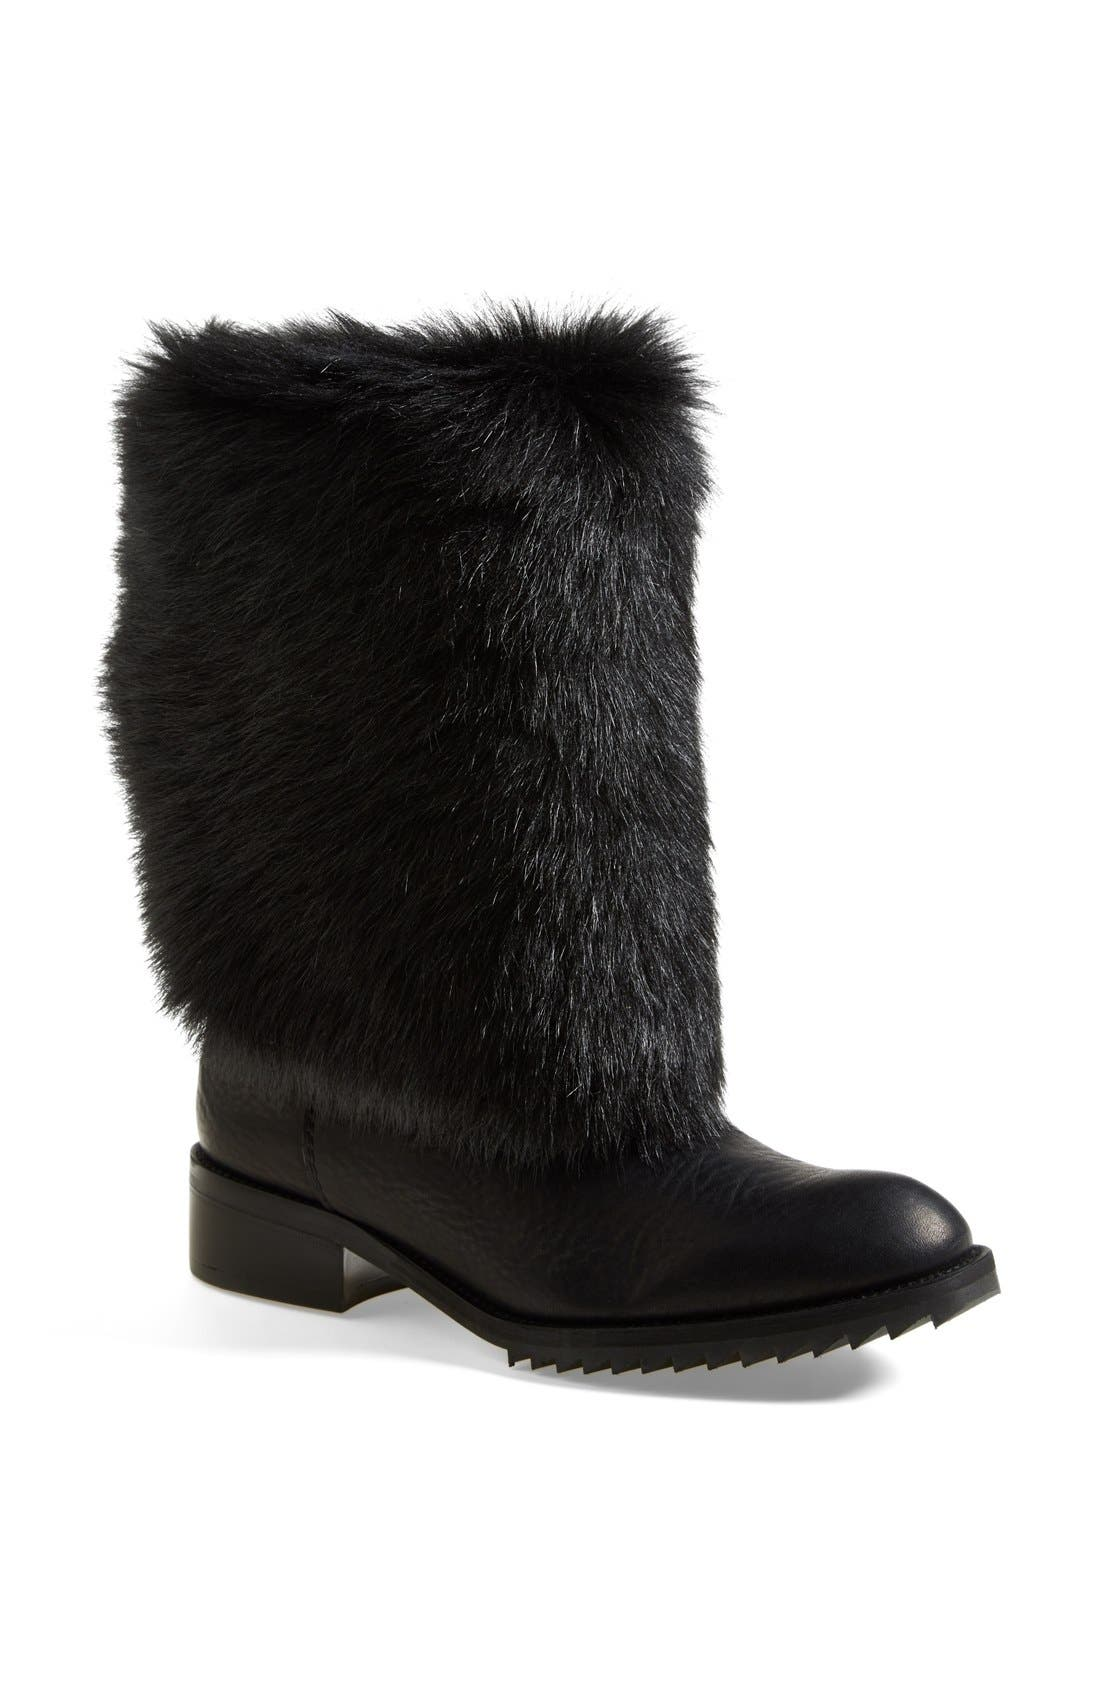 Alternate Image 1 Selected - Pedro Garcia 'Odette' Genuine Shearling & Leather Boot (Women)